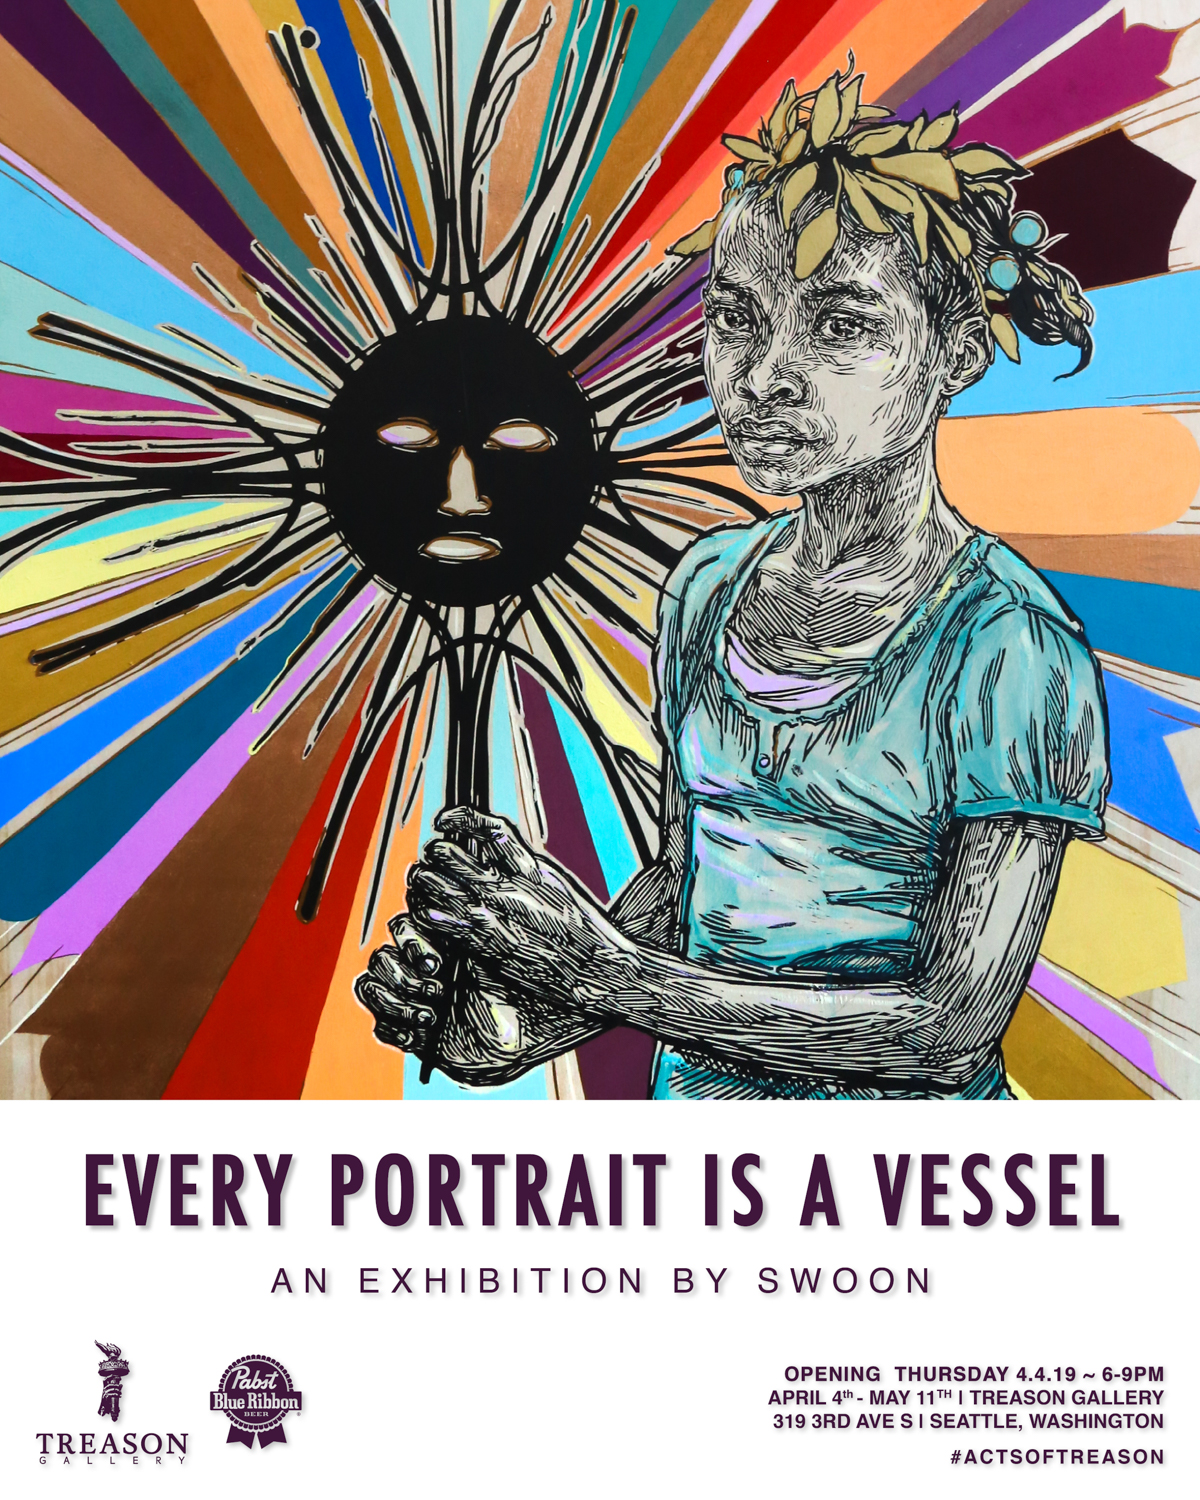 Copy of Swoon - EVERY PORTRAIT IS A VESSEL - Flyer